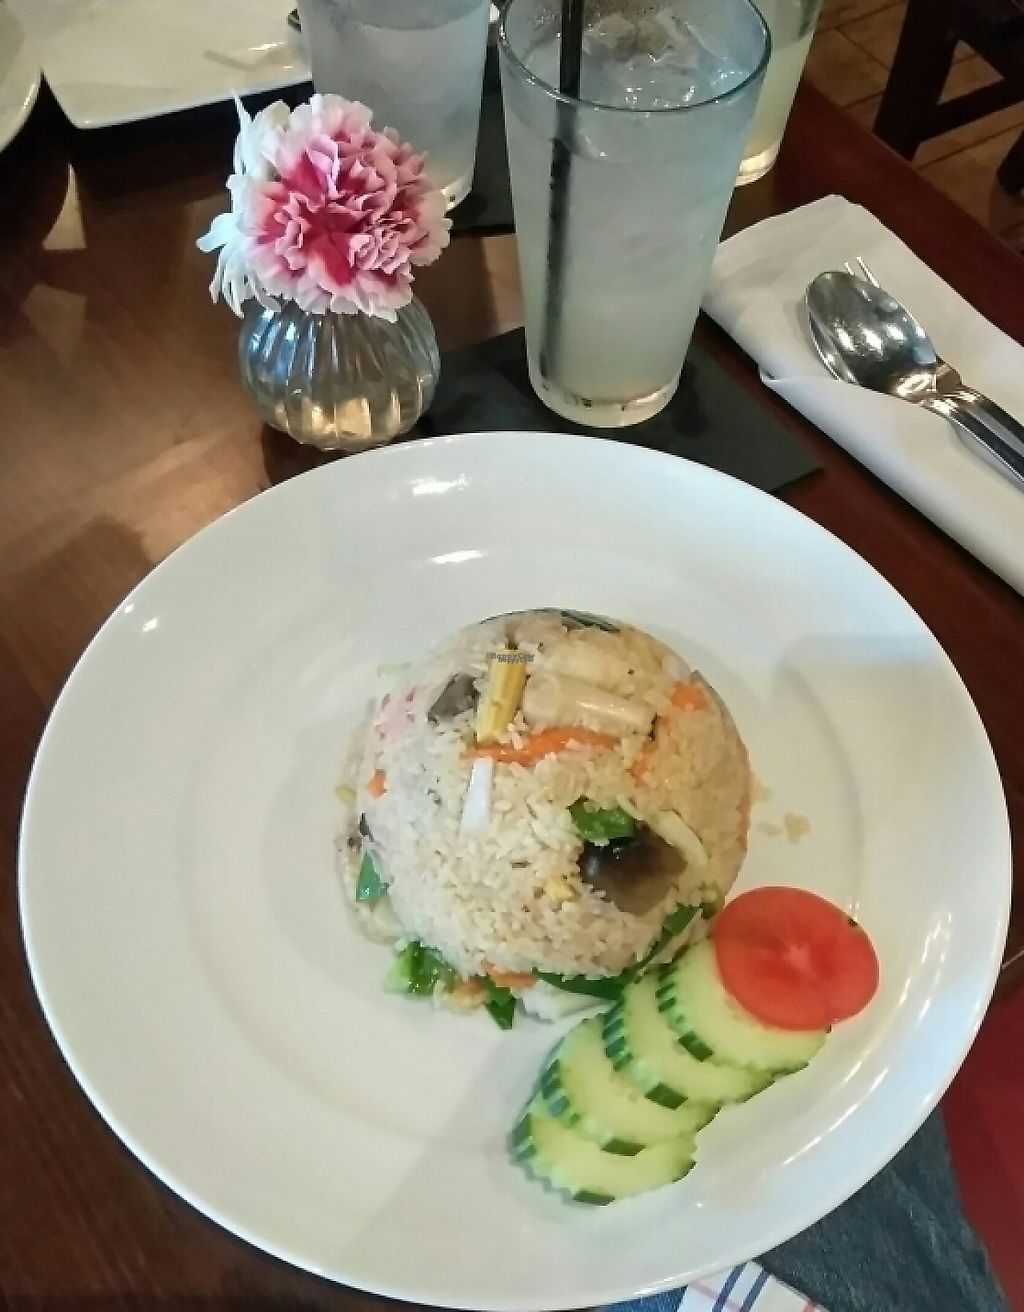 """Photo of Thailicious  by <a href=""""/members/profile/Tonydetra"""">Tonydetra</a> <br/>Bangkok Fried Rice, vegetable no egg <br/> March 19, 2017  - <a href='/contact/abuse/image/86904/238426'>Report</a>"""